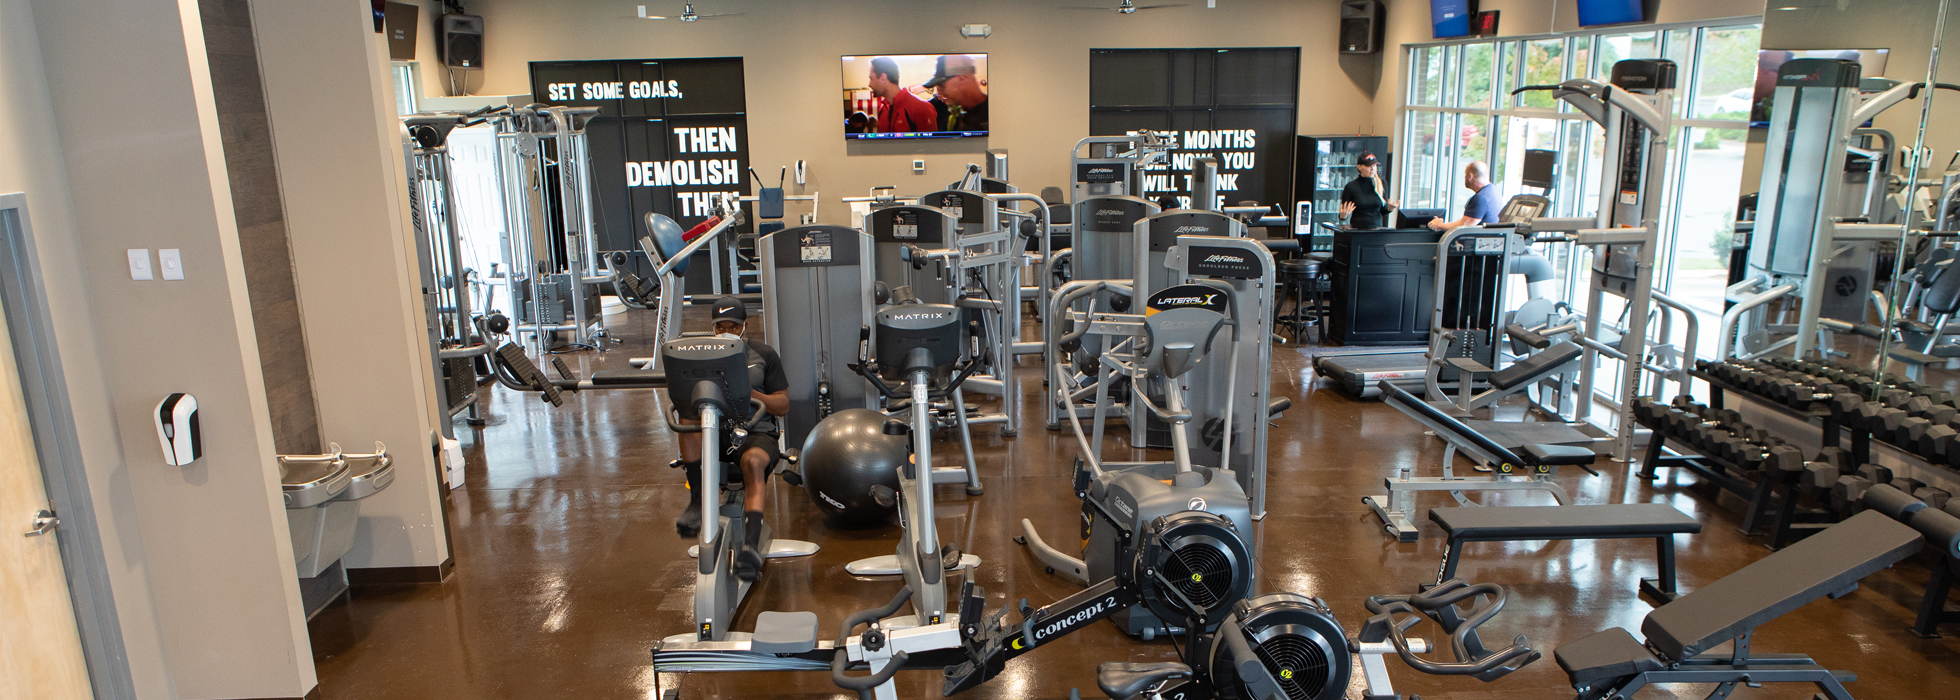 Top 5 Best Gyms To Join in Huntersville NC, Top 5 Best Gyms To Join near Cornelius NC, Top 5 Best Gyms To Join near Birkdale NC, Top 5 Best Gyms To Join near Exit 23 NC, Top 5 Best Gyms To Join near Davidson NC